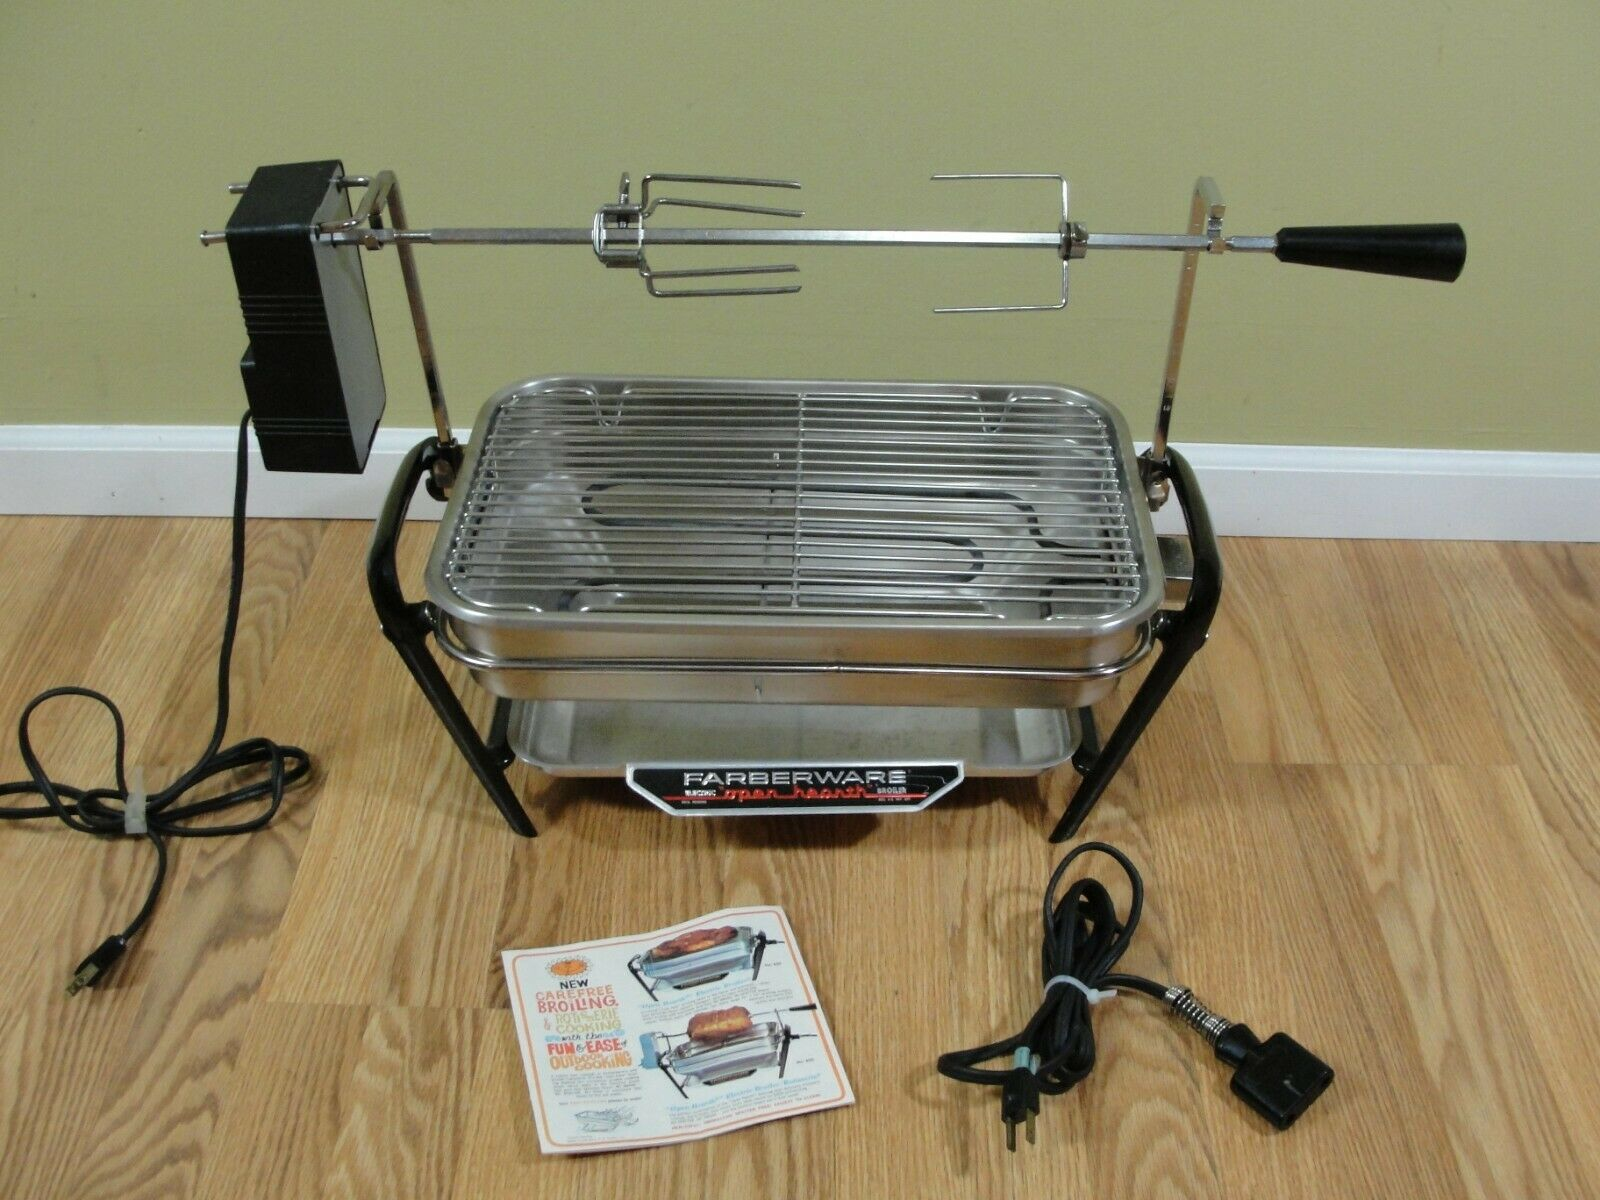 CouleurRWARE OPEN HEARTH rougeisserie Grill Broiler Model 450 A sans fumée Indoor